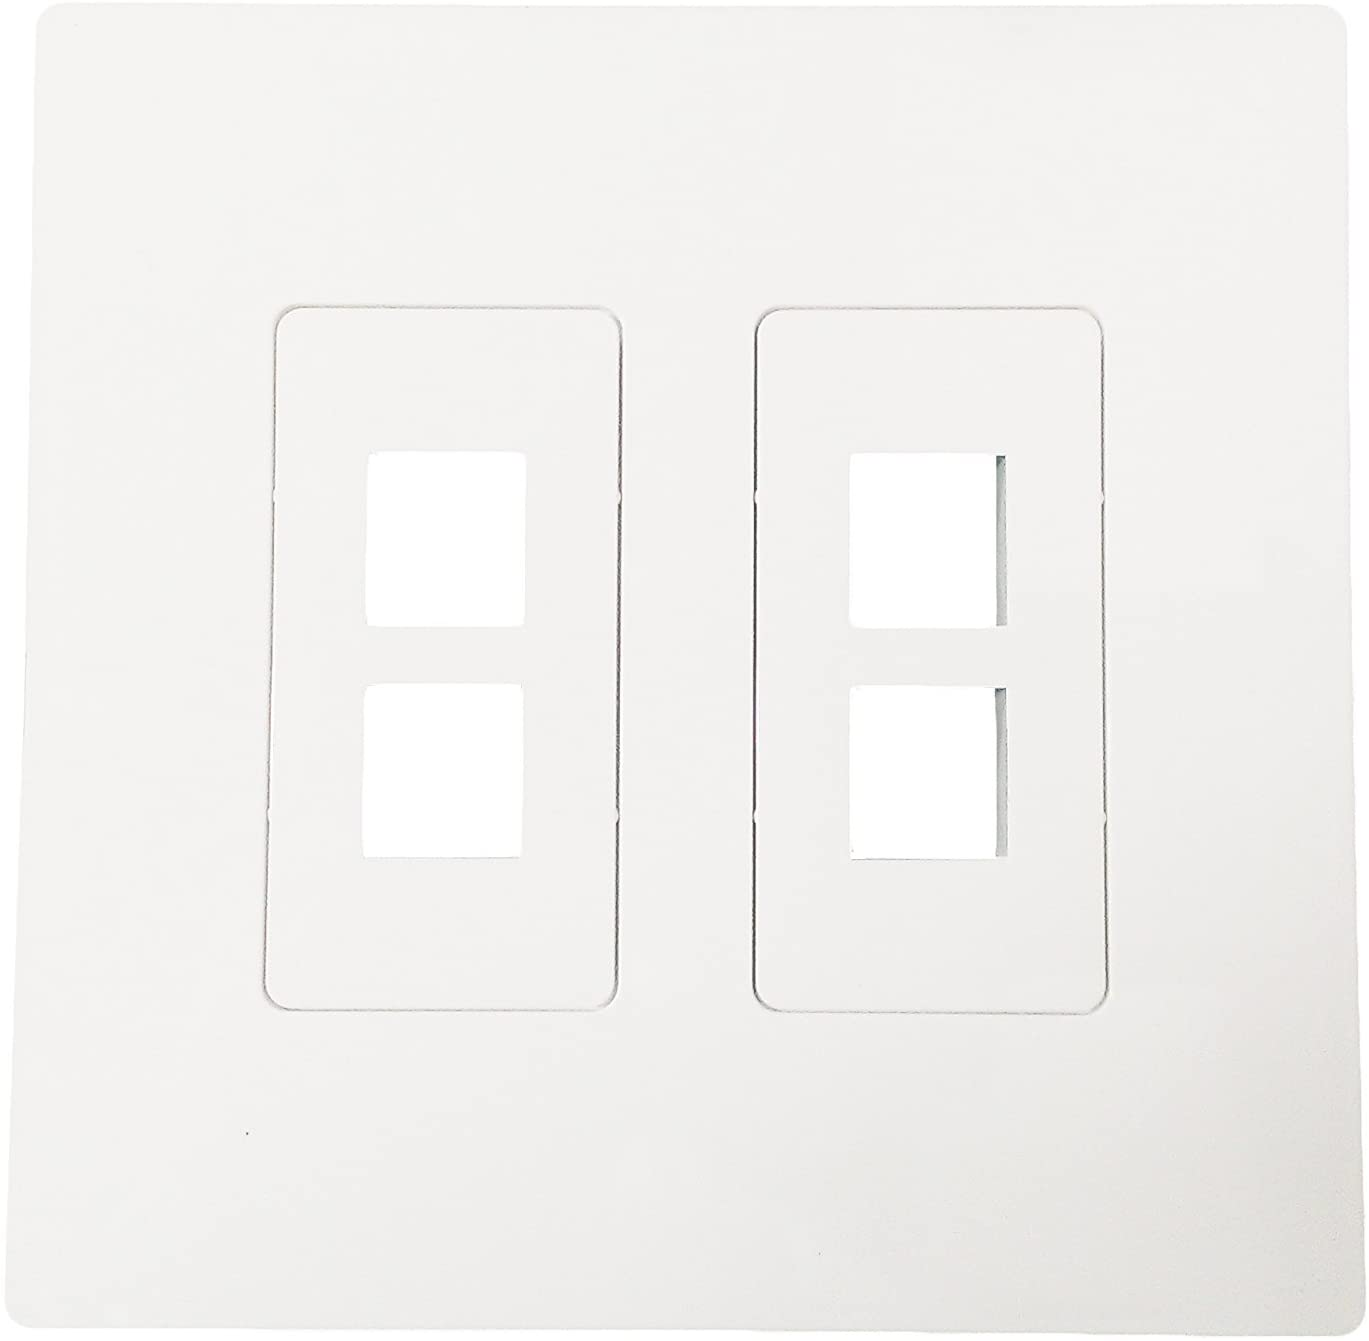 R.J. Enterprises - Screwless Snap-on Wallplate 2-Gang 4 Port RJ-2013B-S4